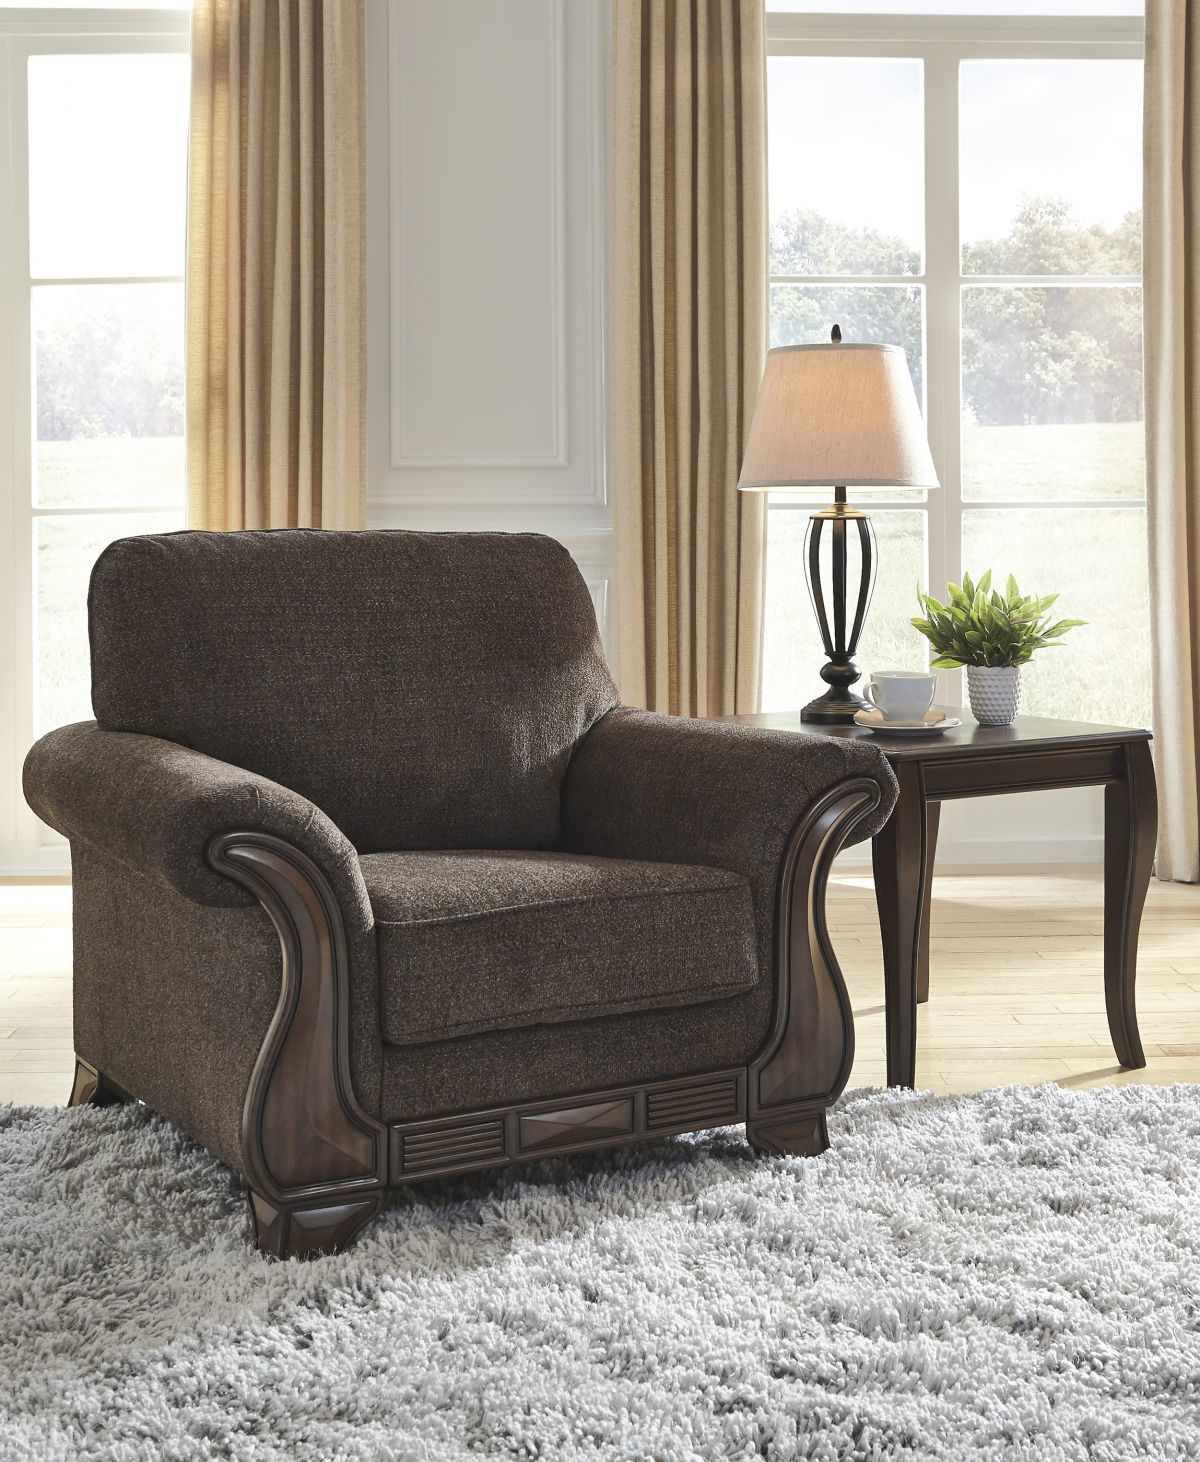 Picture of Miltonwood Chair